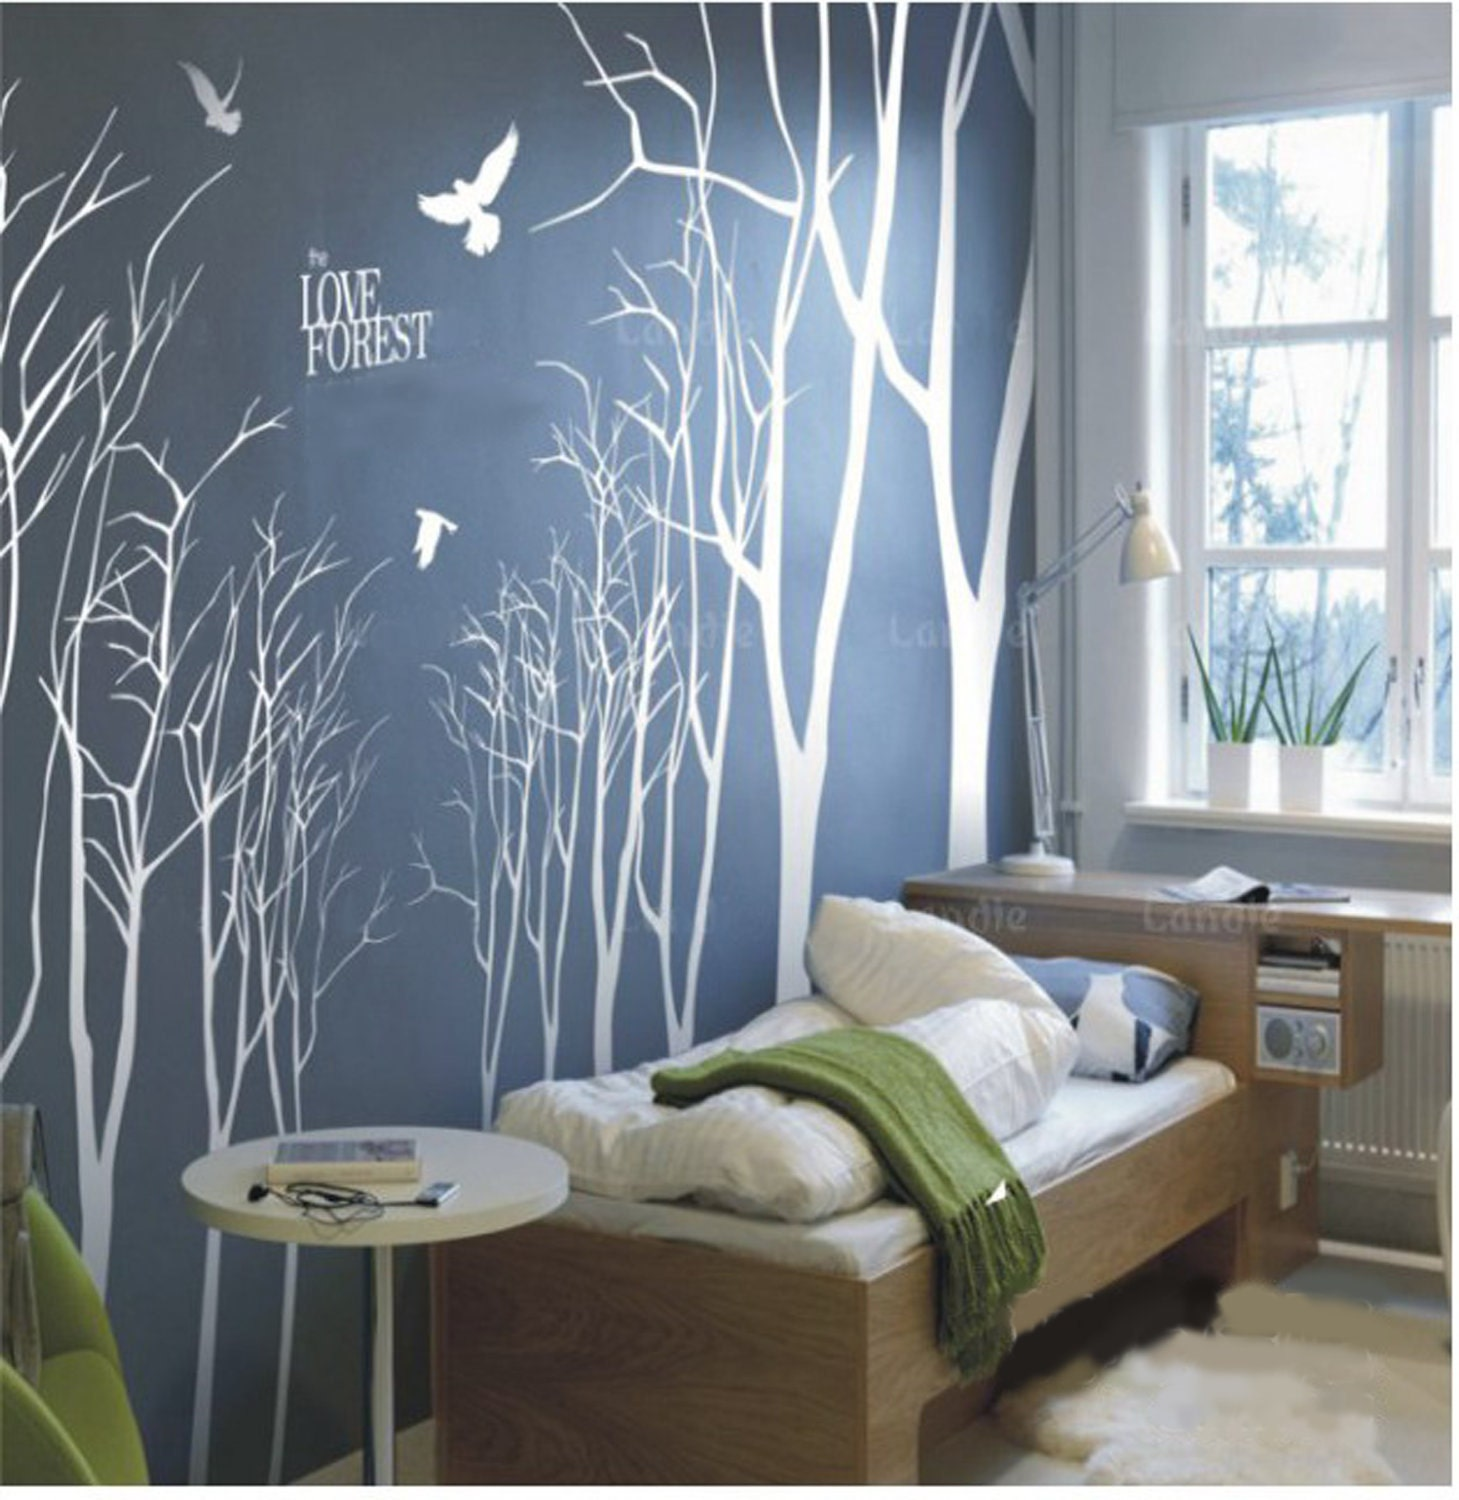 vinyl wall decals wall stickesr tree decal muralswall art 14. Black Bedroom Furniture Sets. Home Design Ideas